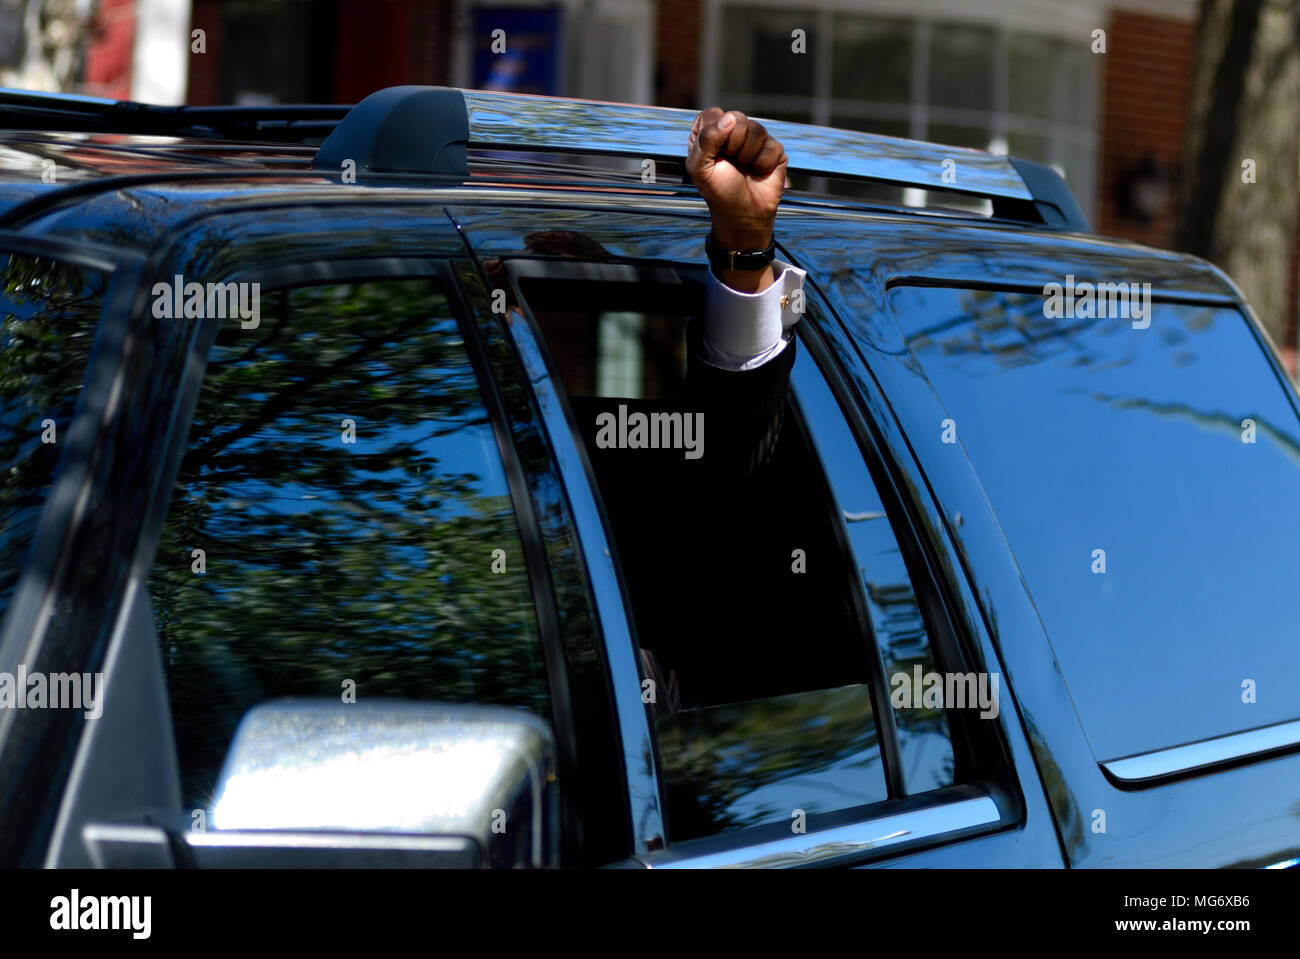 Norristown, USA. 26th Apr, 2018. Andrew Wyatt, spokesperson for Bill Cosby, raises a fist upon departure after learning of the guilty verdict in the sexual assault trial, at Montgomery County Court House in Norristown, PA, USA, on April 26, 2018. Credit: Bastiaan Slabbers/Alamy Live News - Stock Image